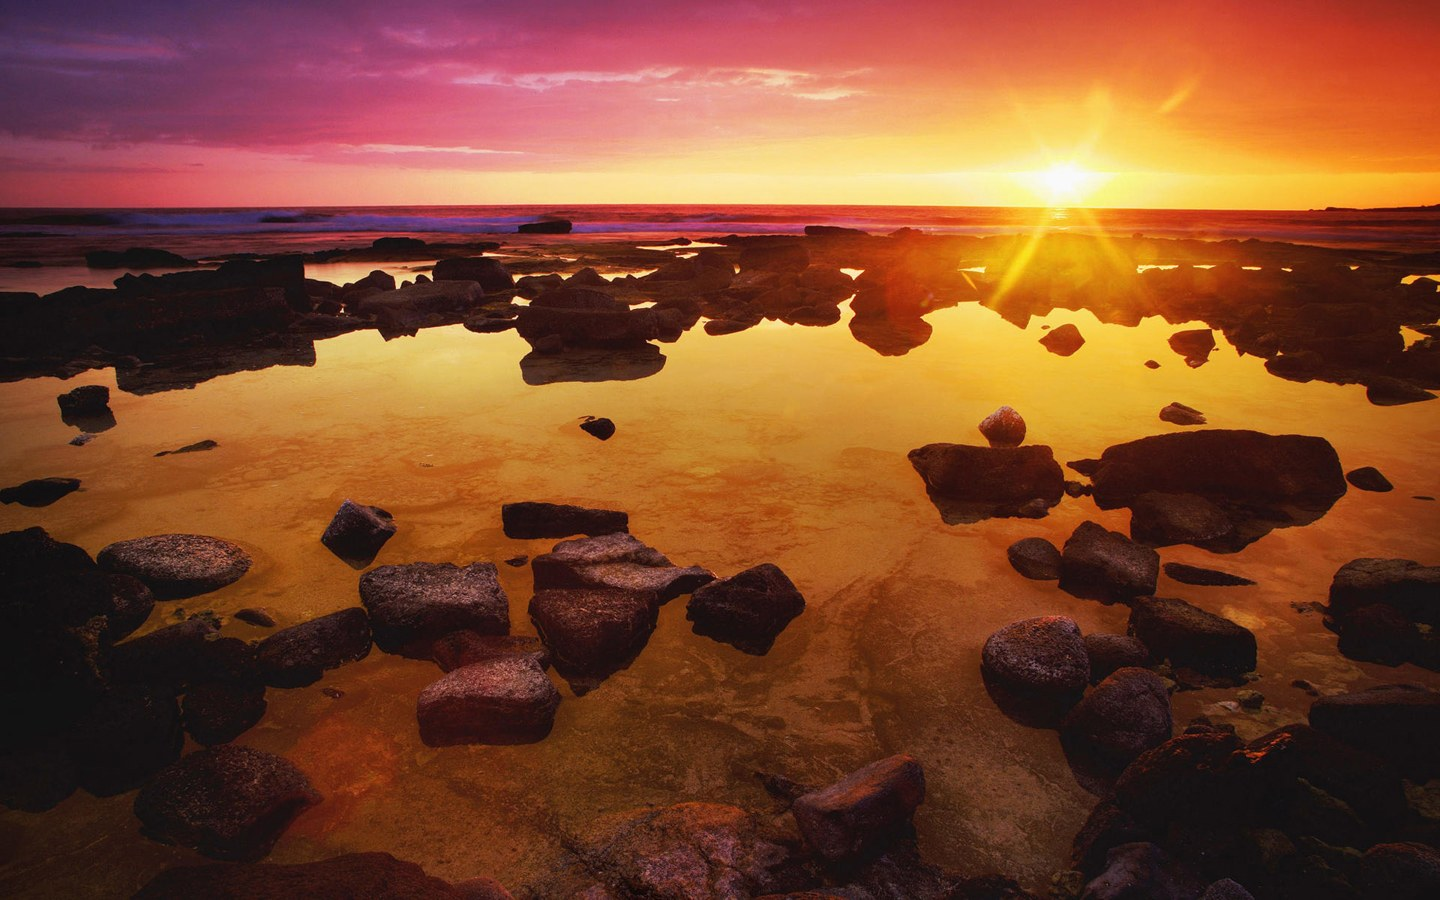 1440x900 Water rocks sunset